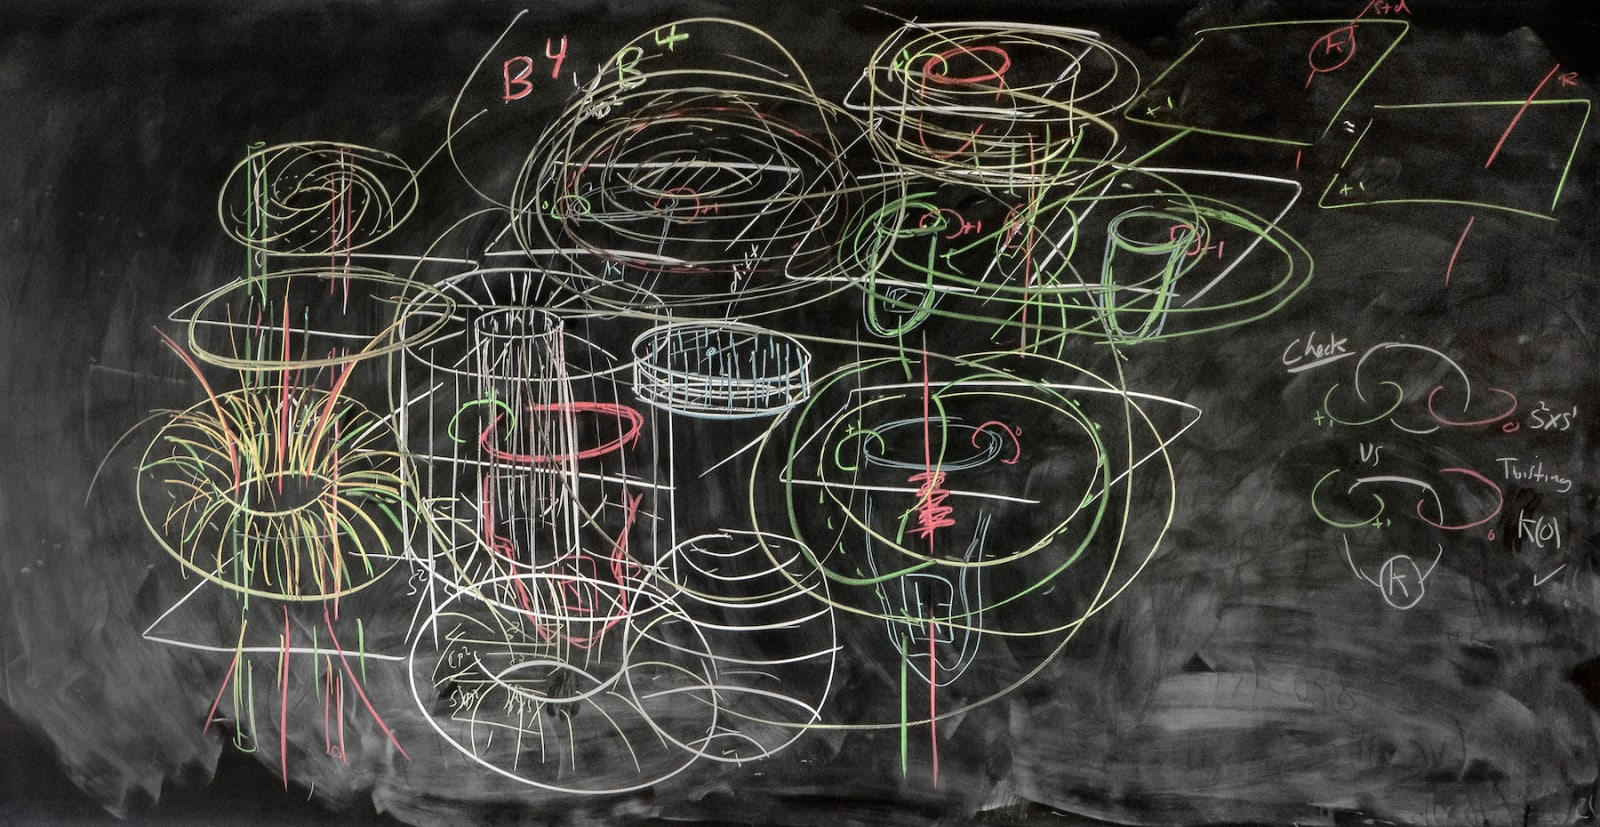 Formulas on chalkboard by mathematician David Gabai, from the Do Not Erase series by Jessica Wynne